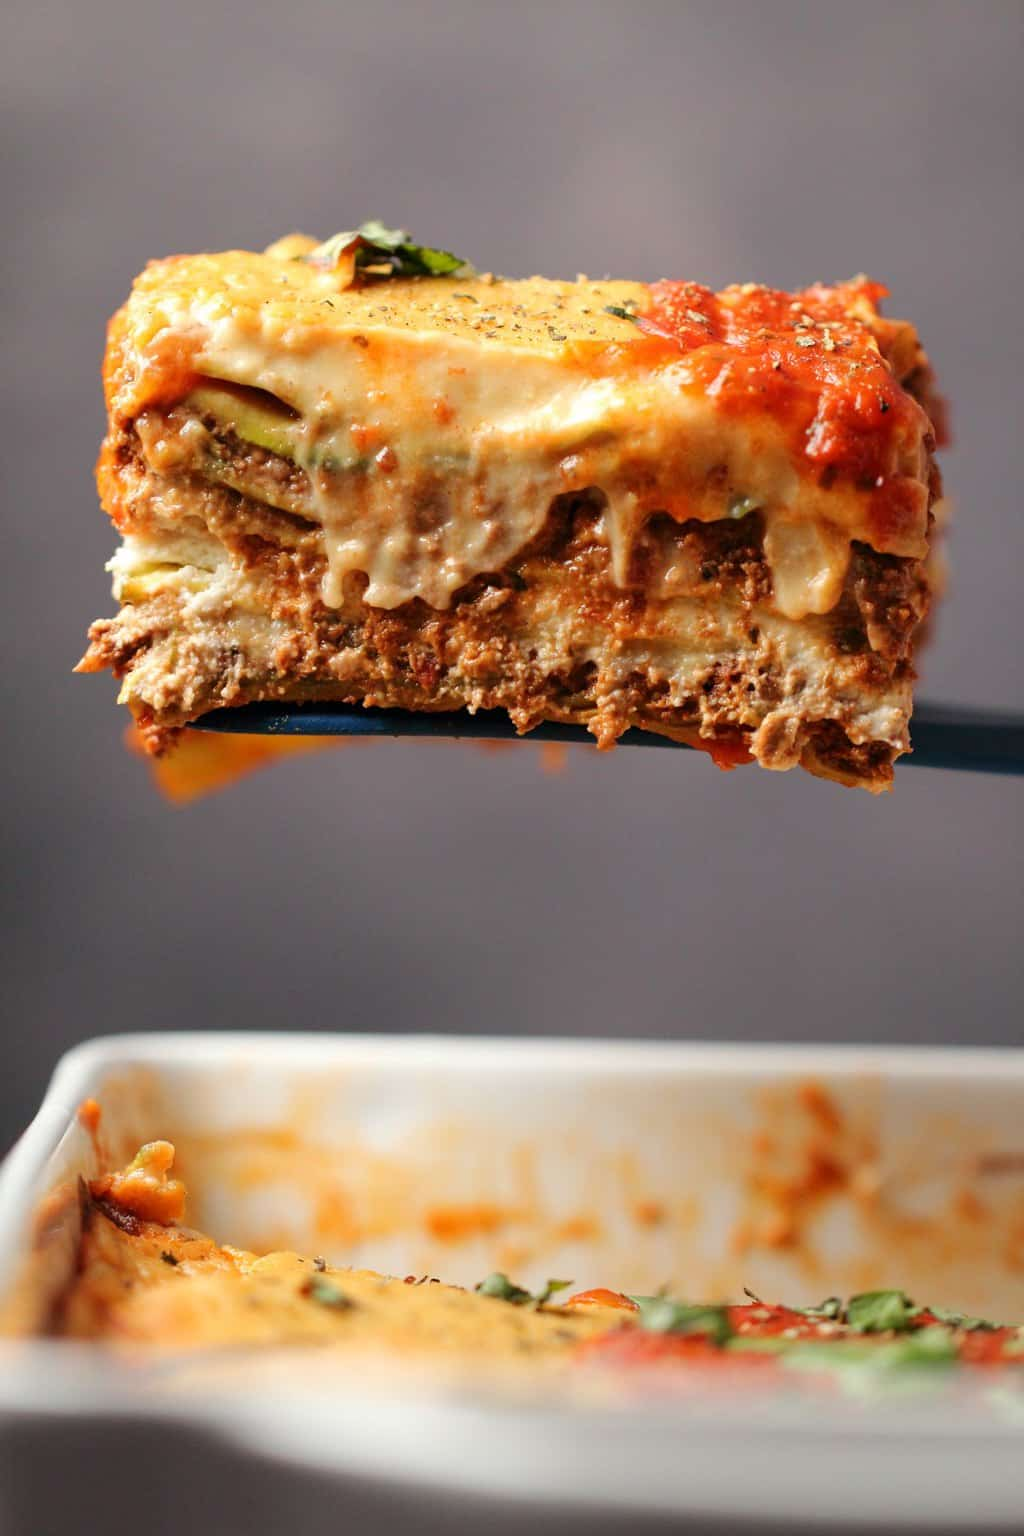 A slice of vegan lasagna lifting out of a white dish.